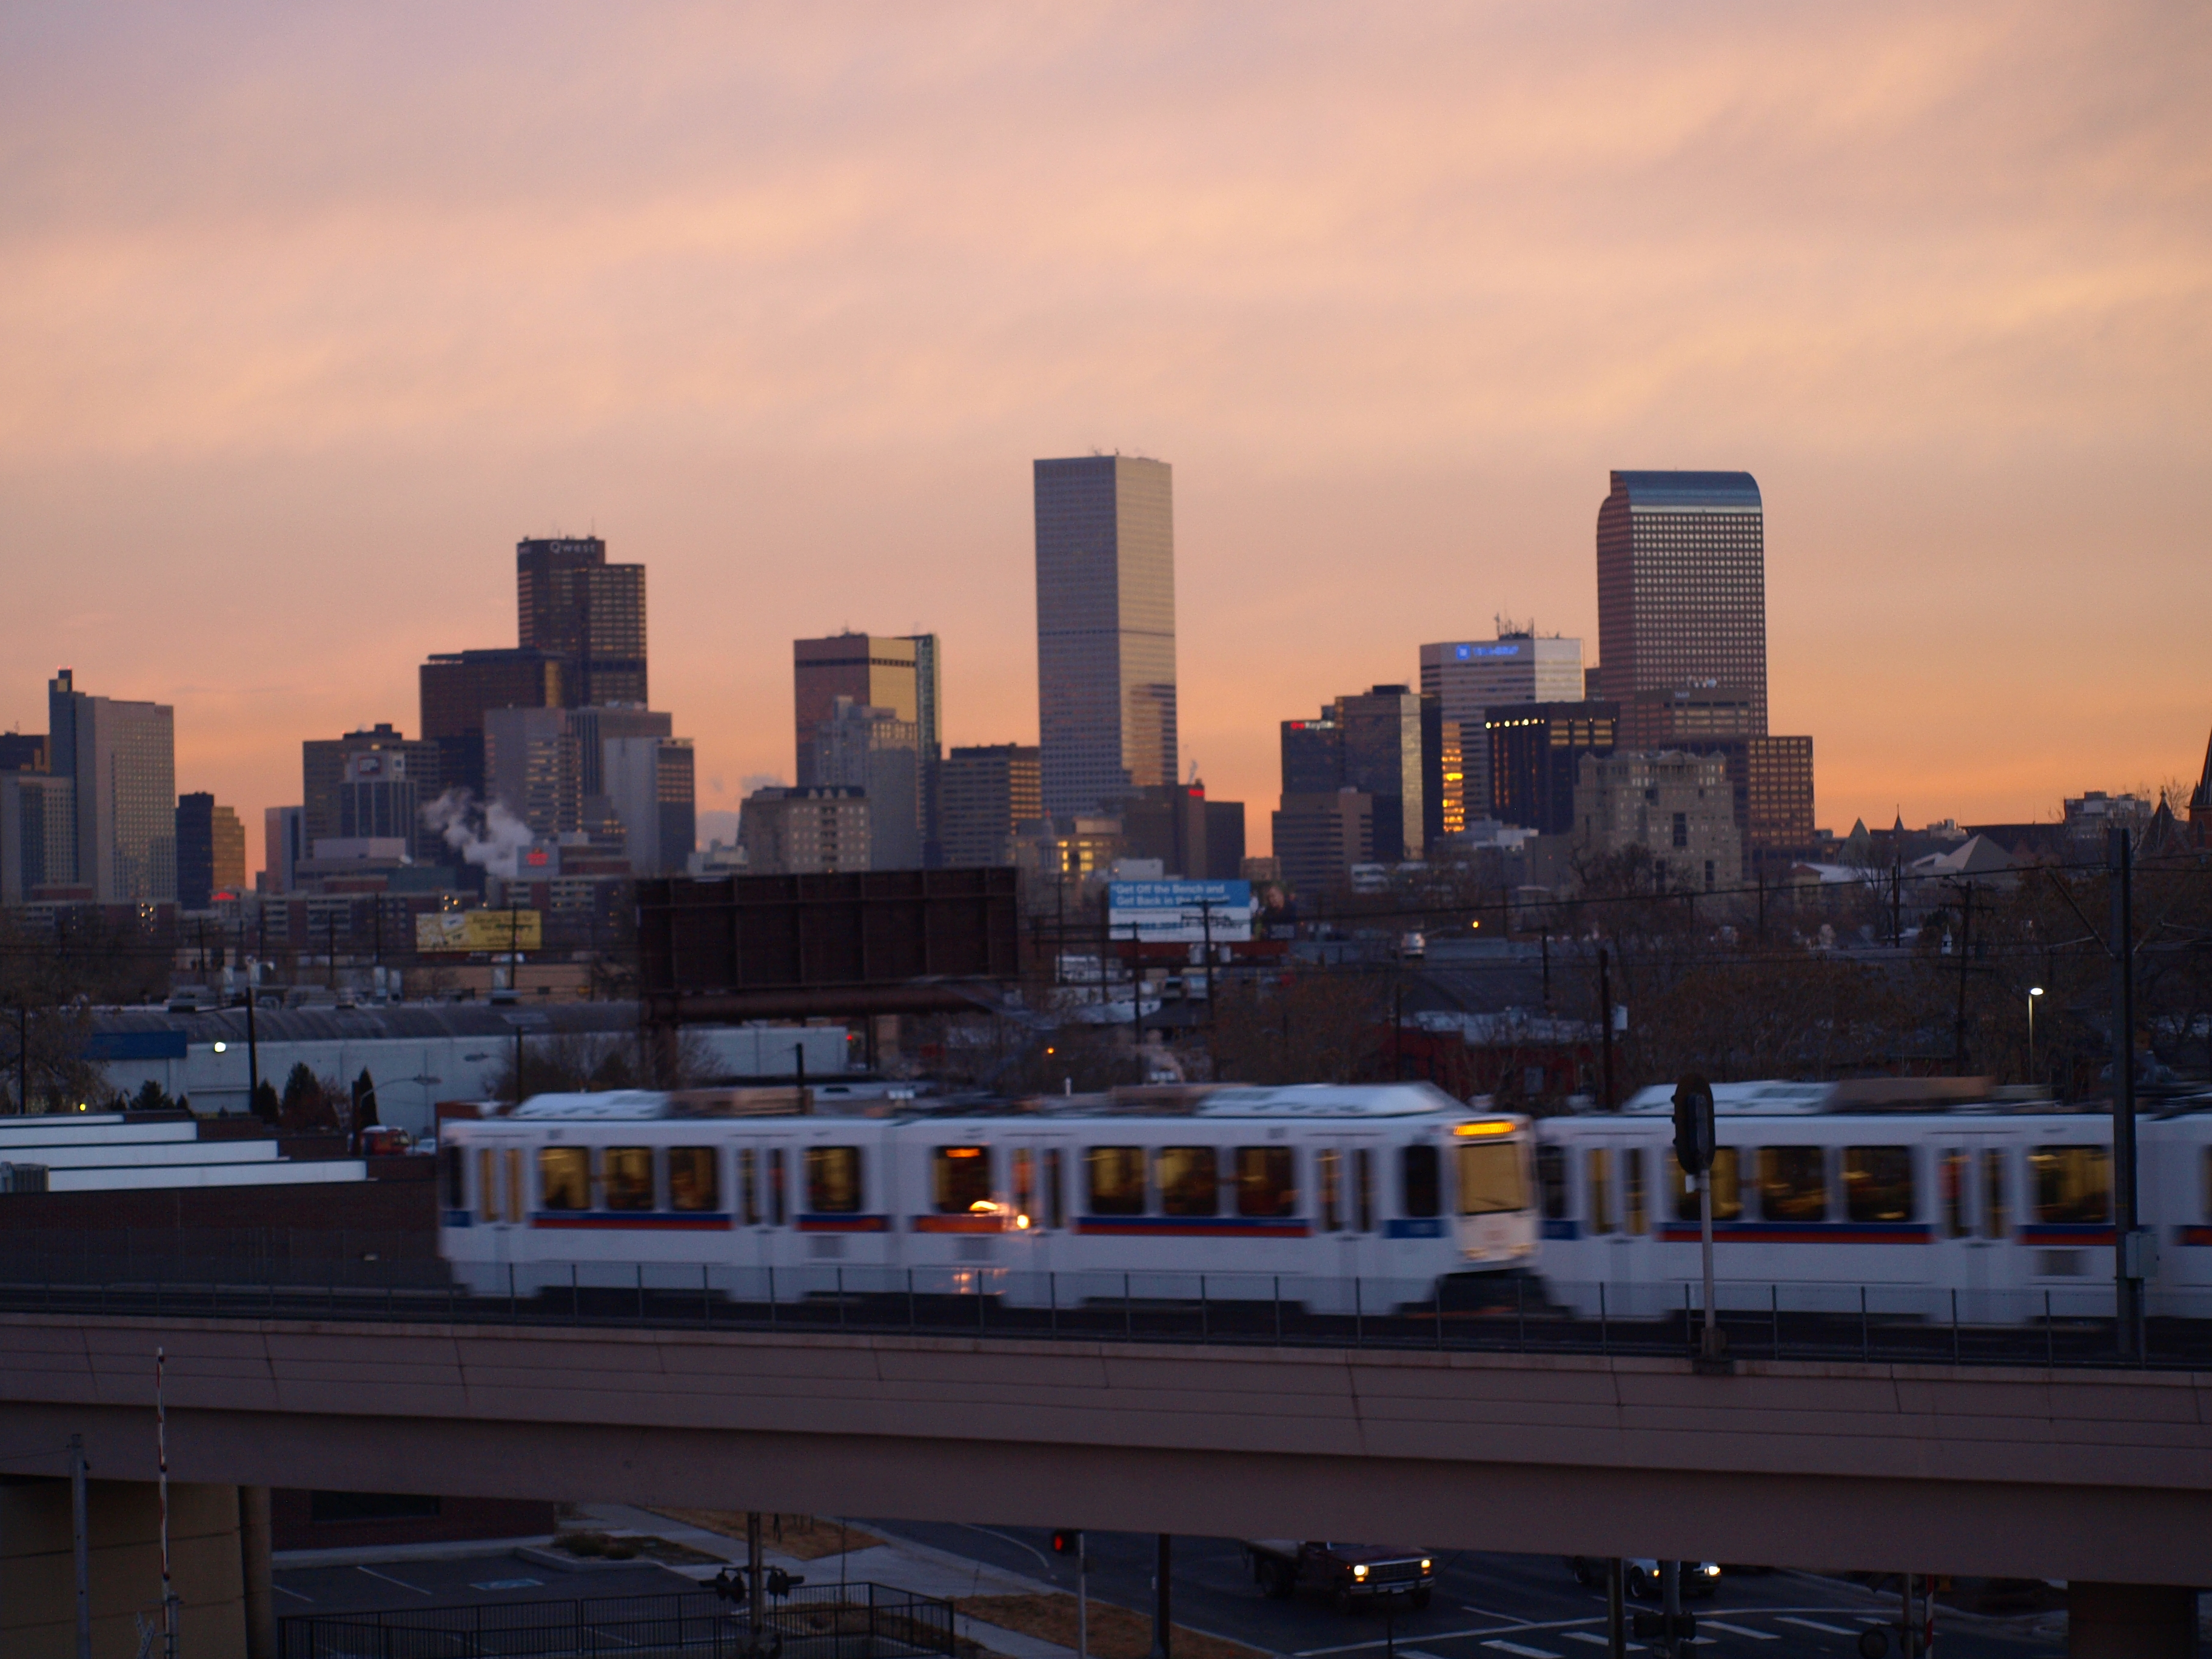 Downtown Denver with RTD light rail train from Bolt Factory